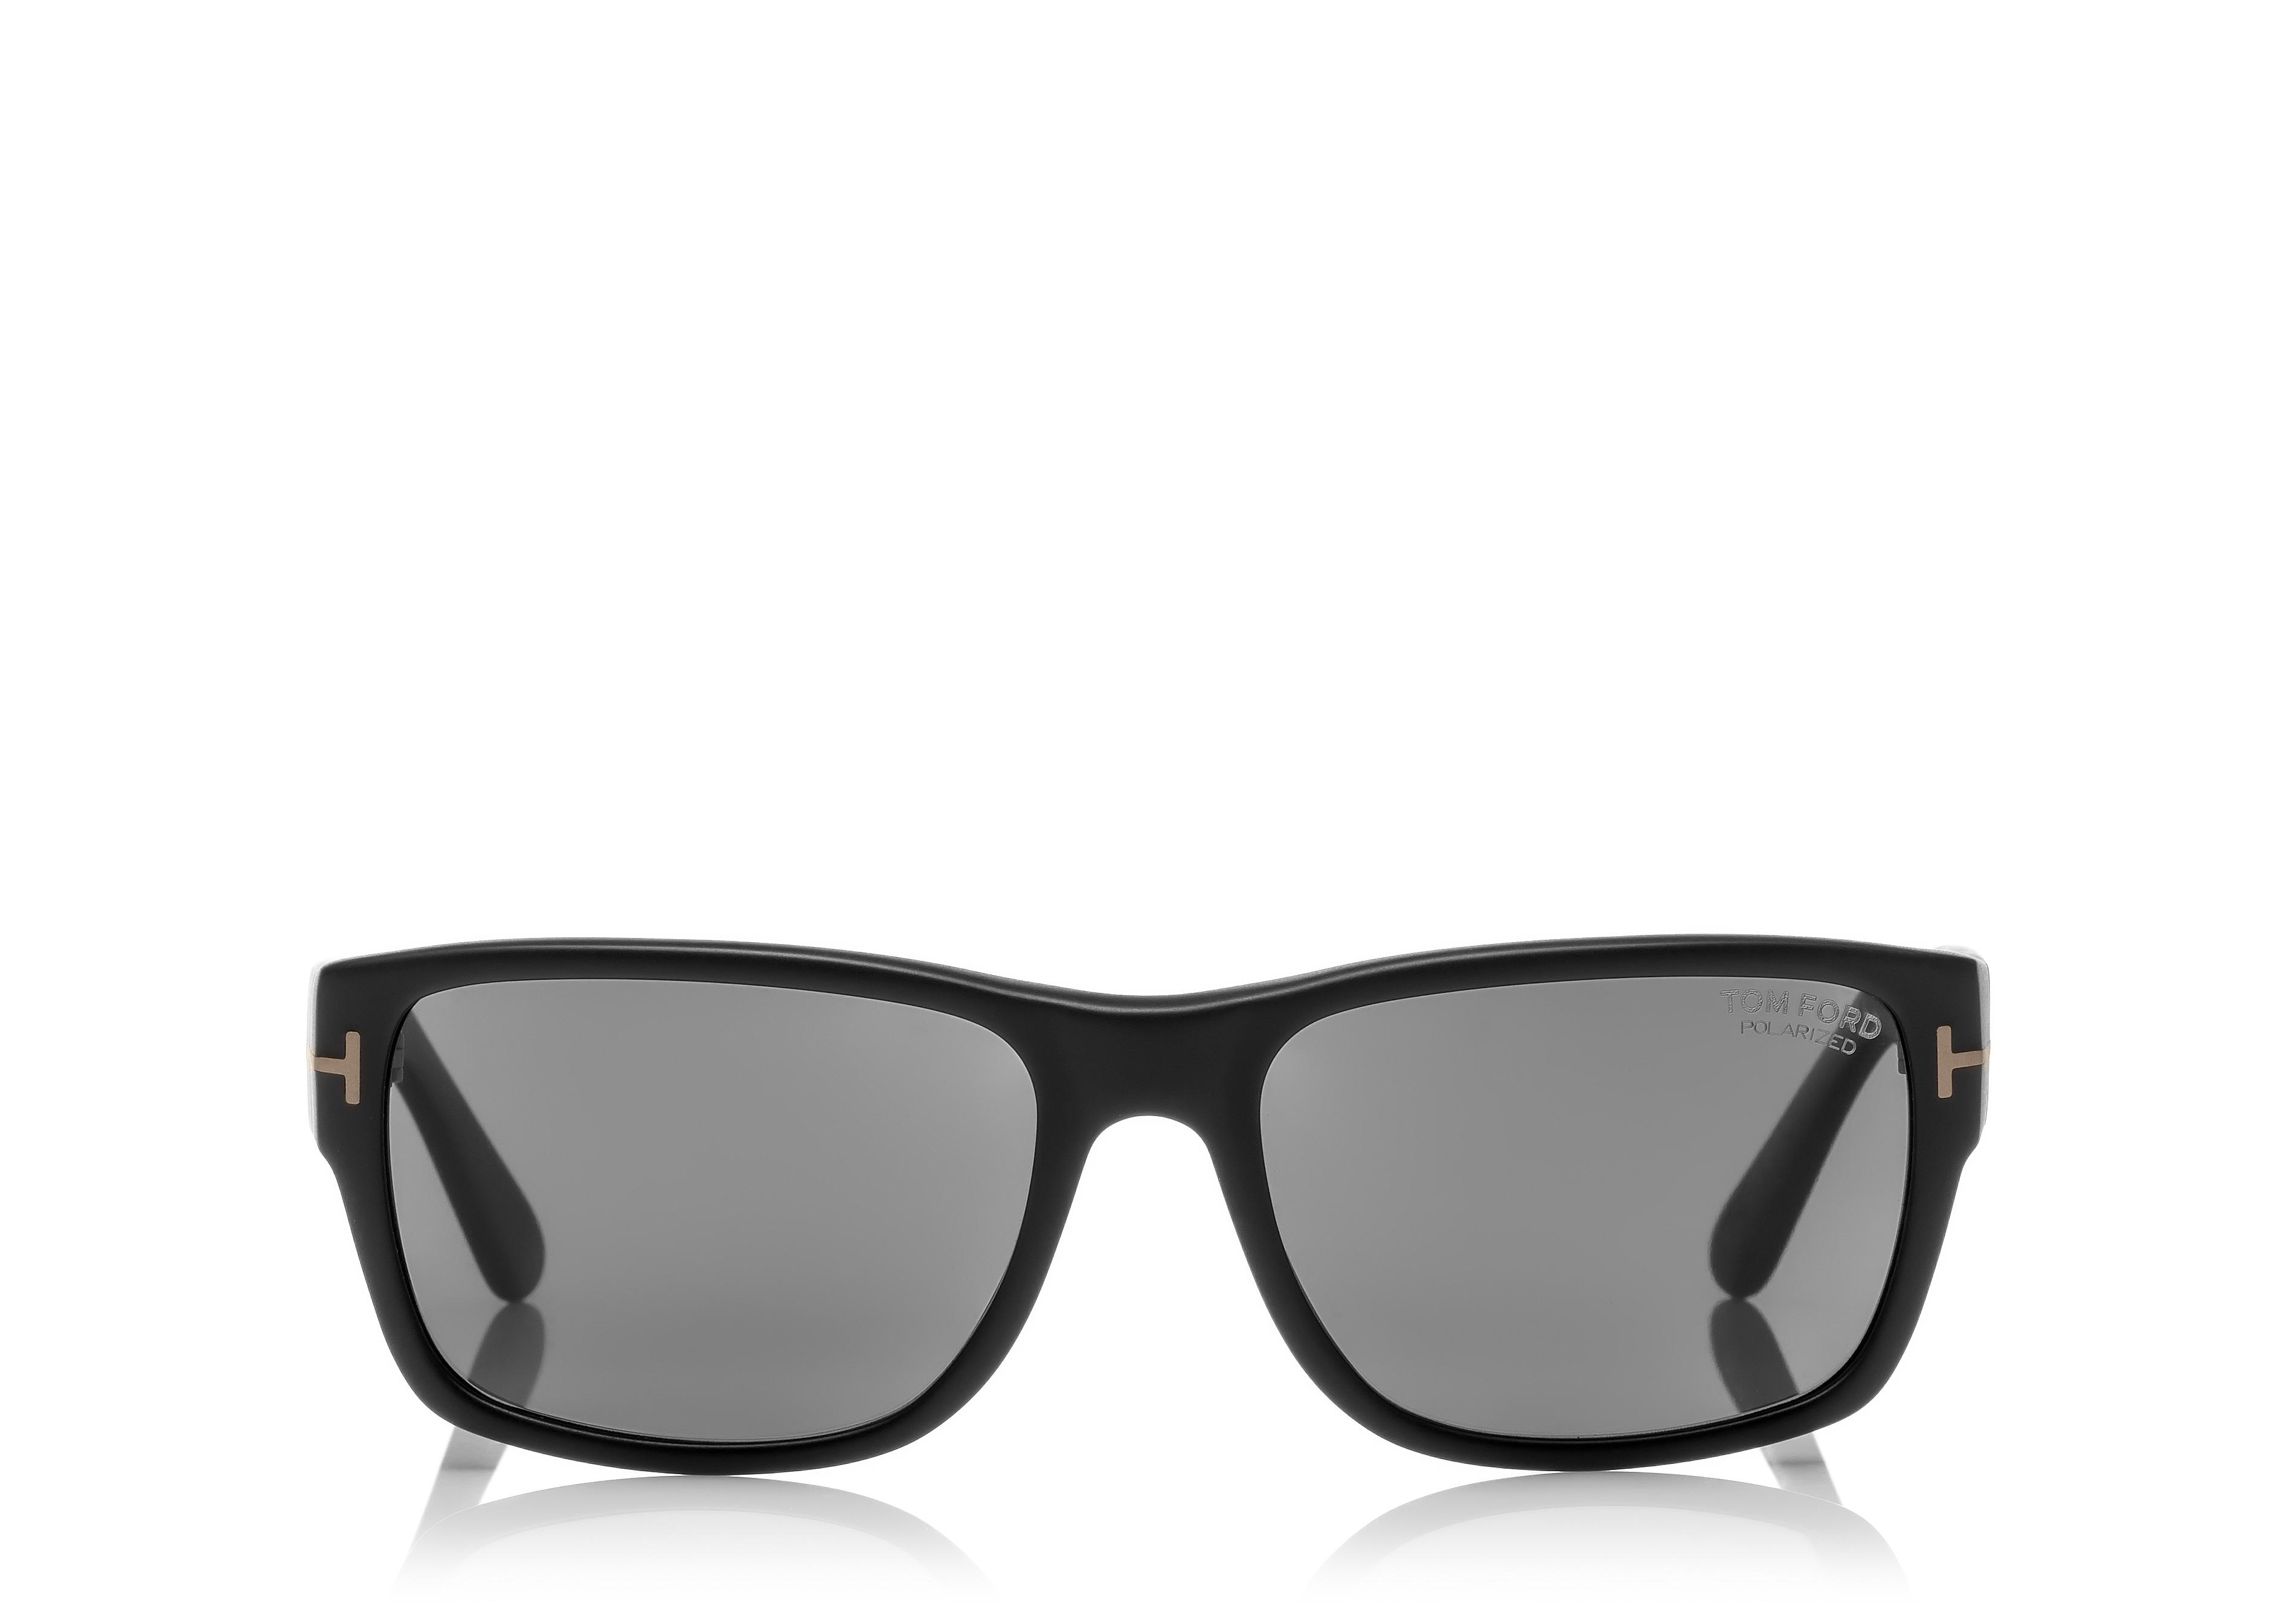 MASON SUNGLASSES POLARIZED A thumbnail